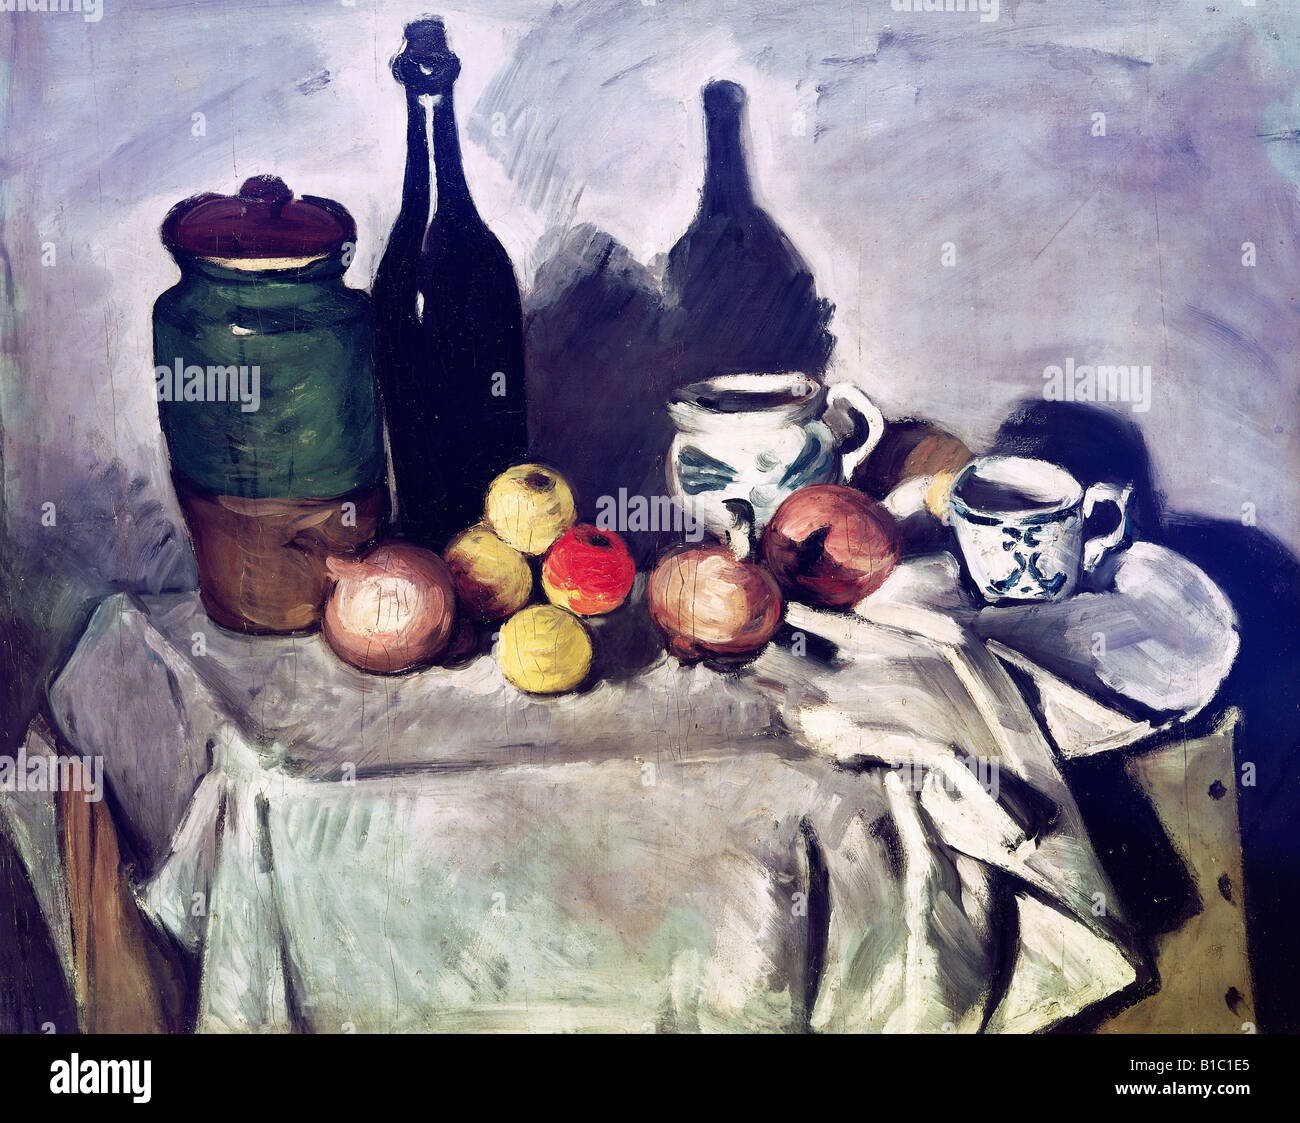 fine arts, Cezanne, Paul, (19.1.1893 - 22.10.1906), painting, 'Still Life with Fruits and Dishes', around - Stock Image